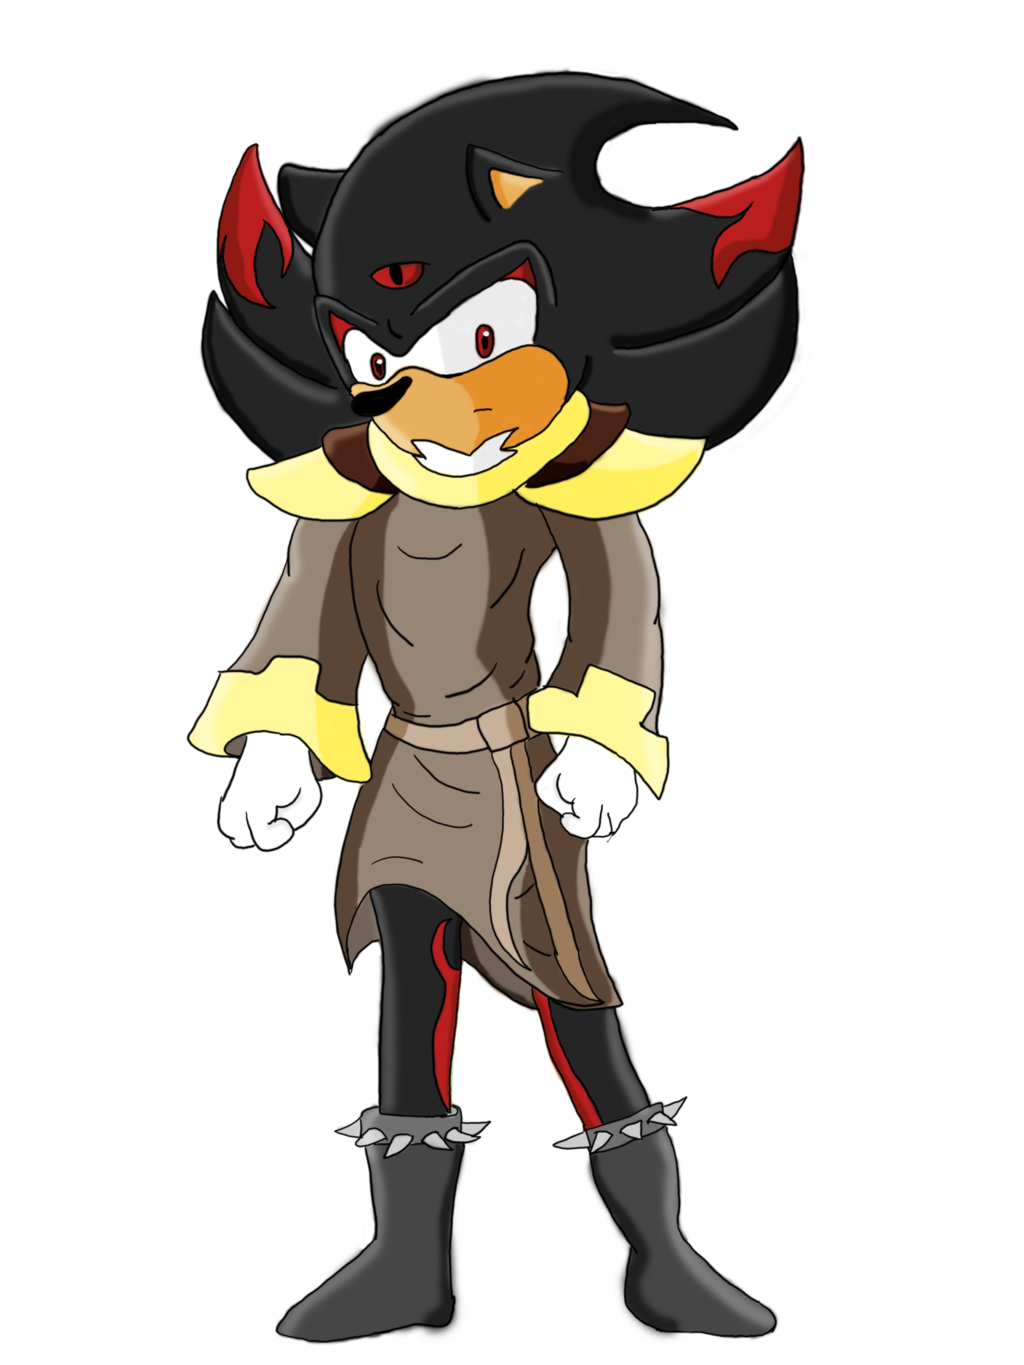 Doom drawing drill instructor. Black the hedgehog by